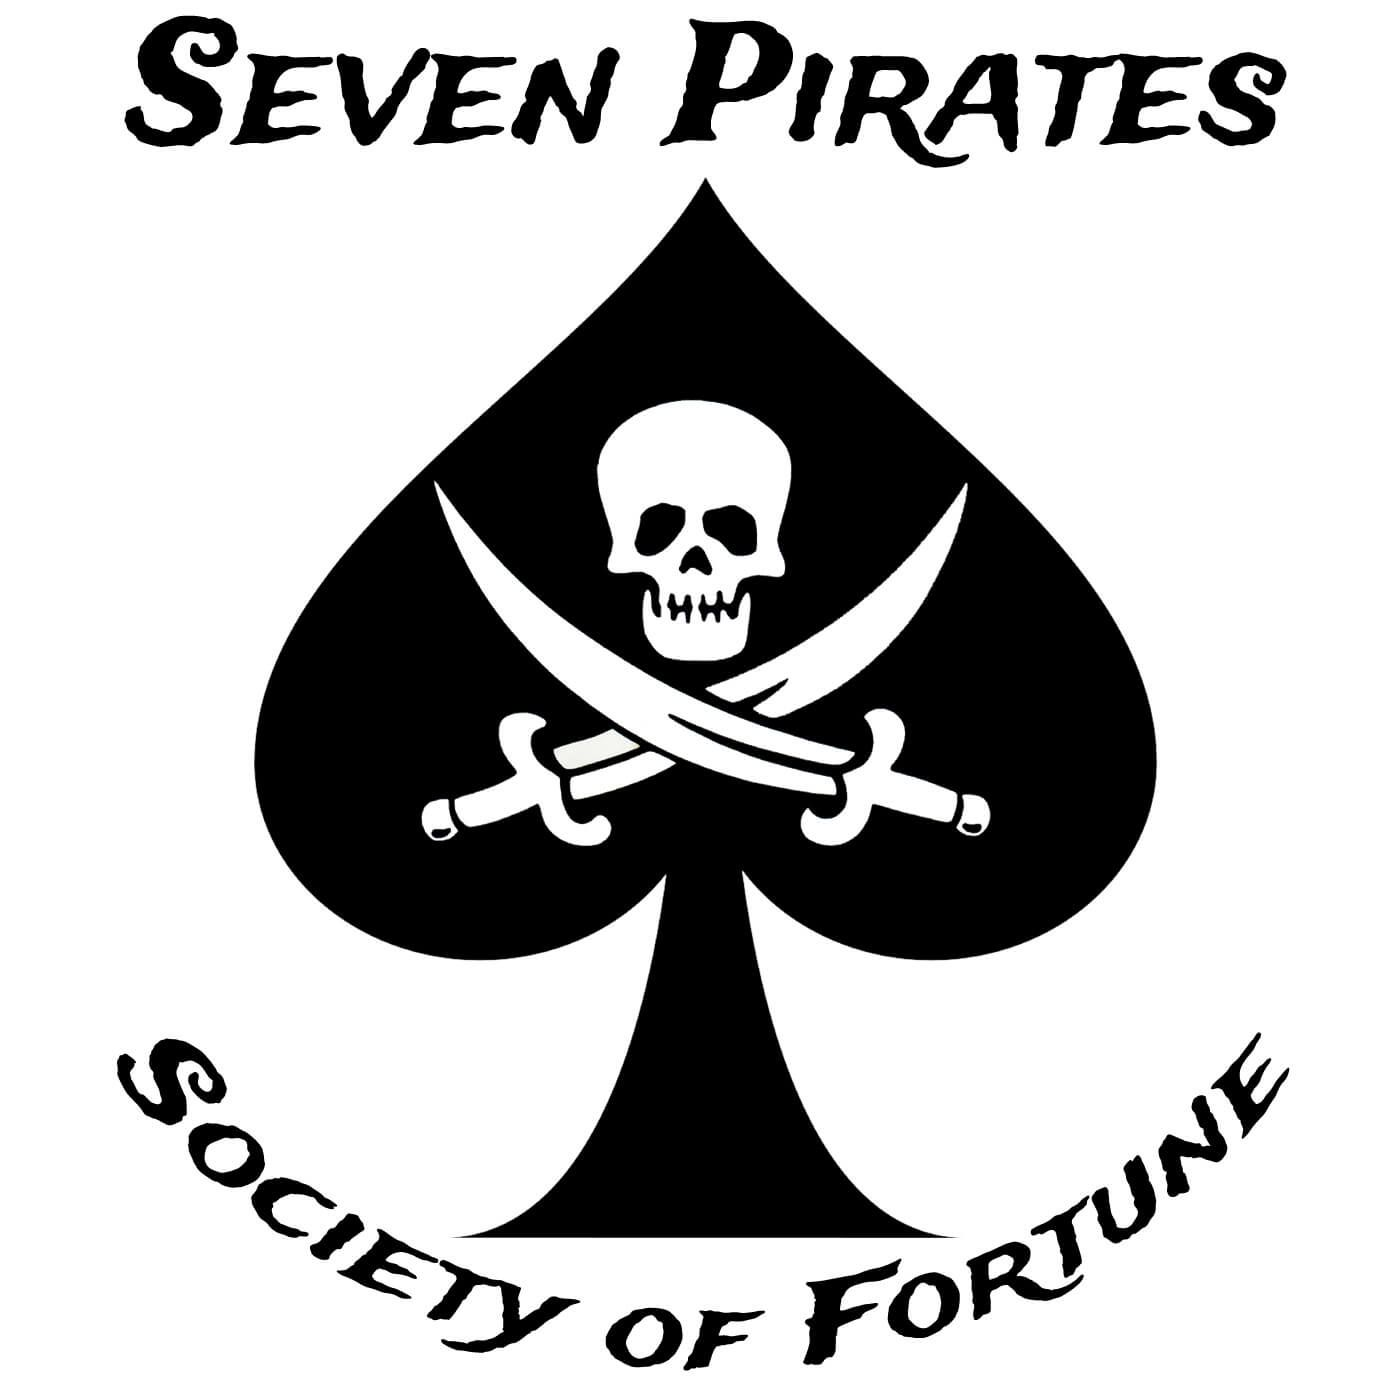 Seven Pirates Society Of Fortune In 2020 Pirates Society Fortune